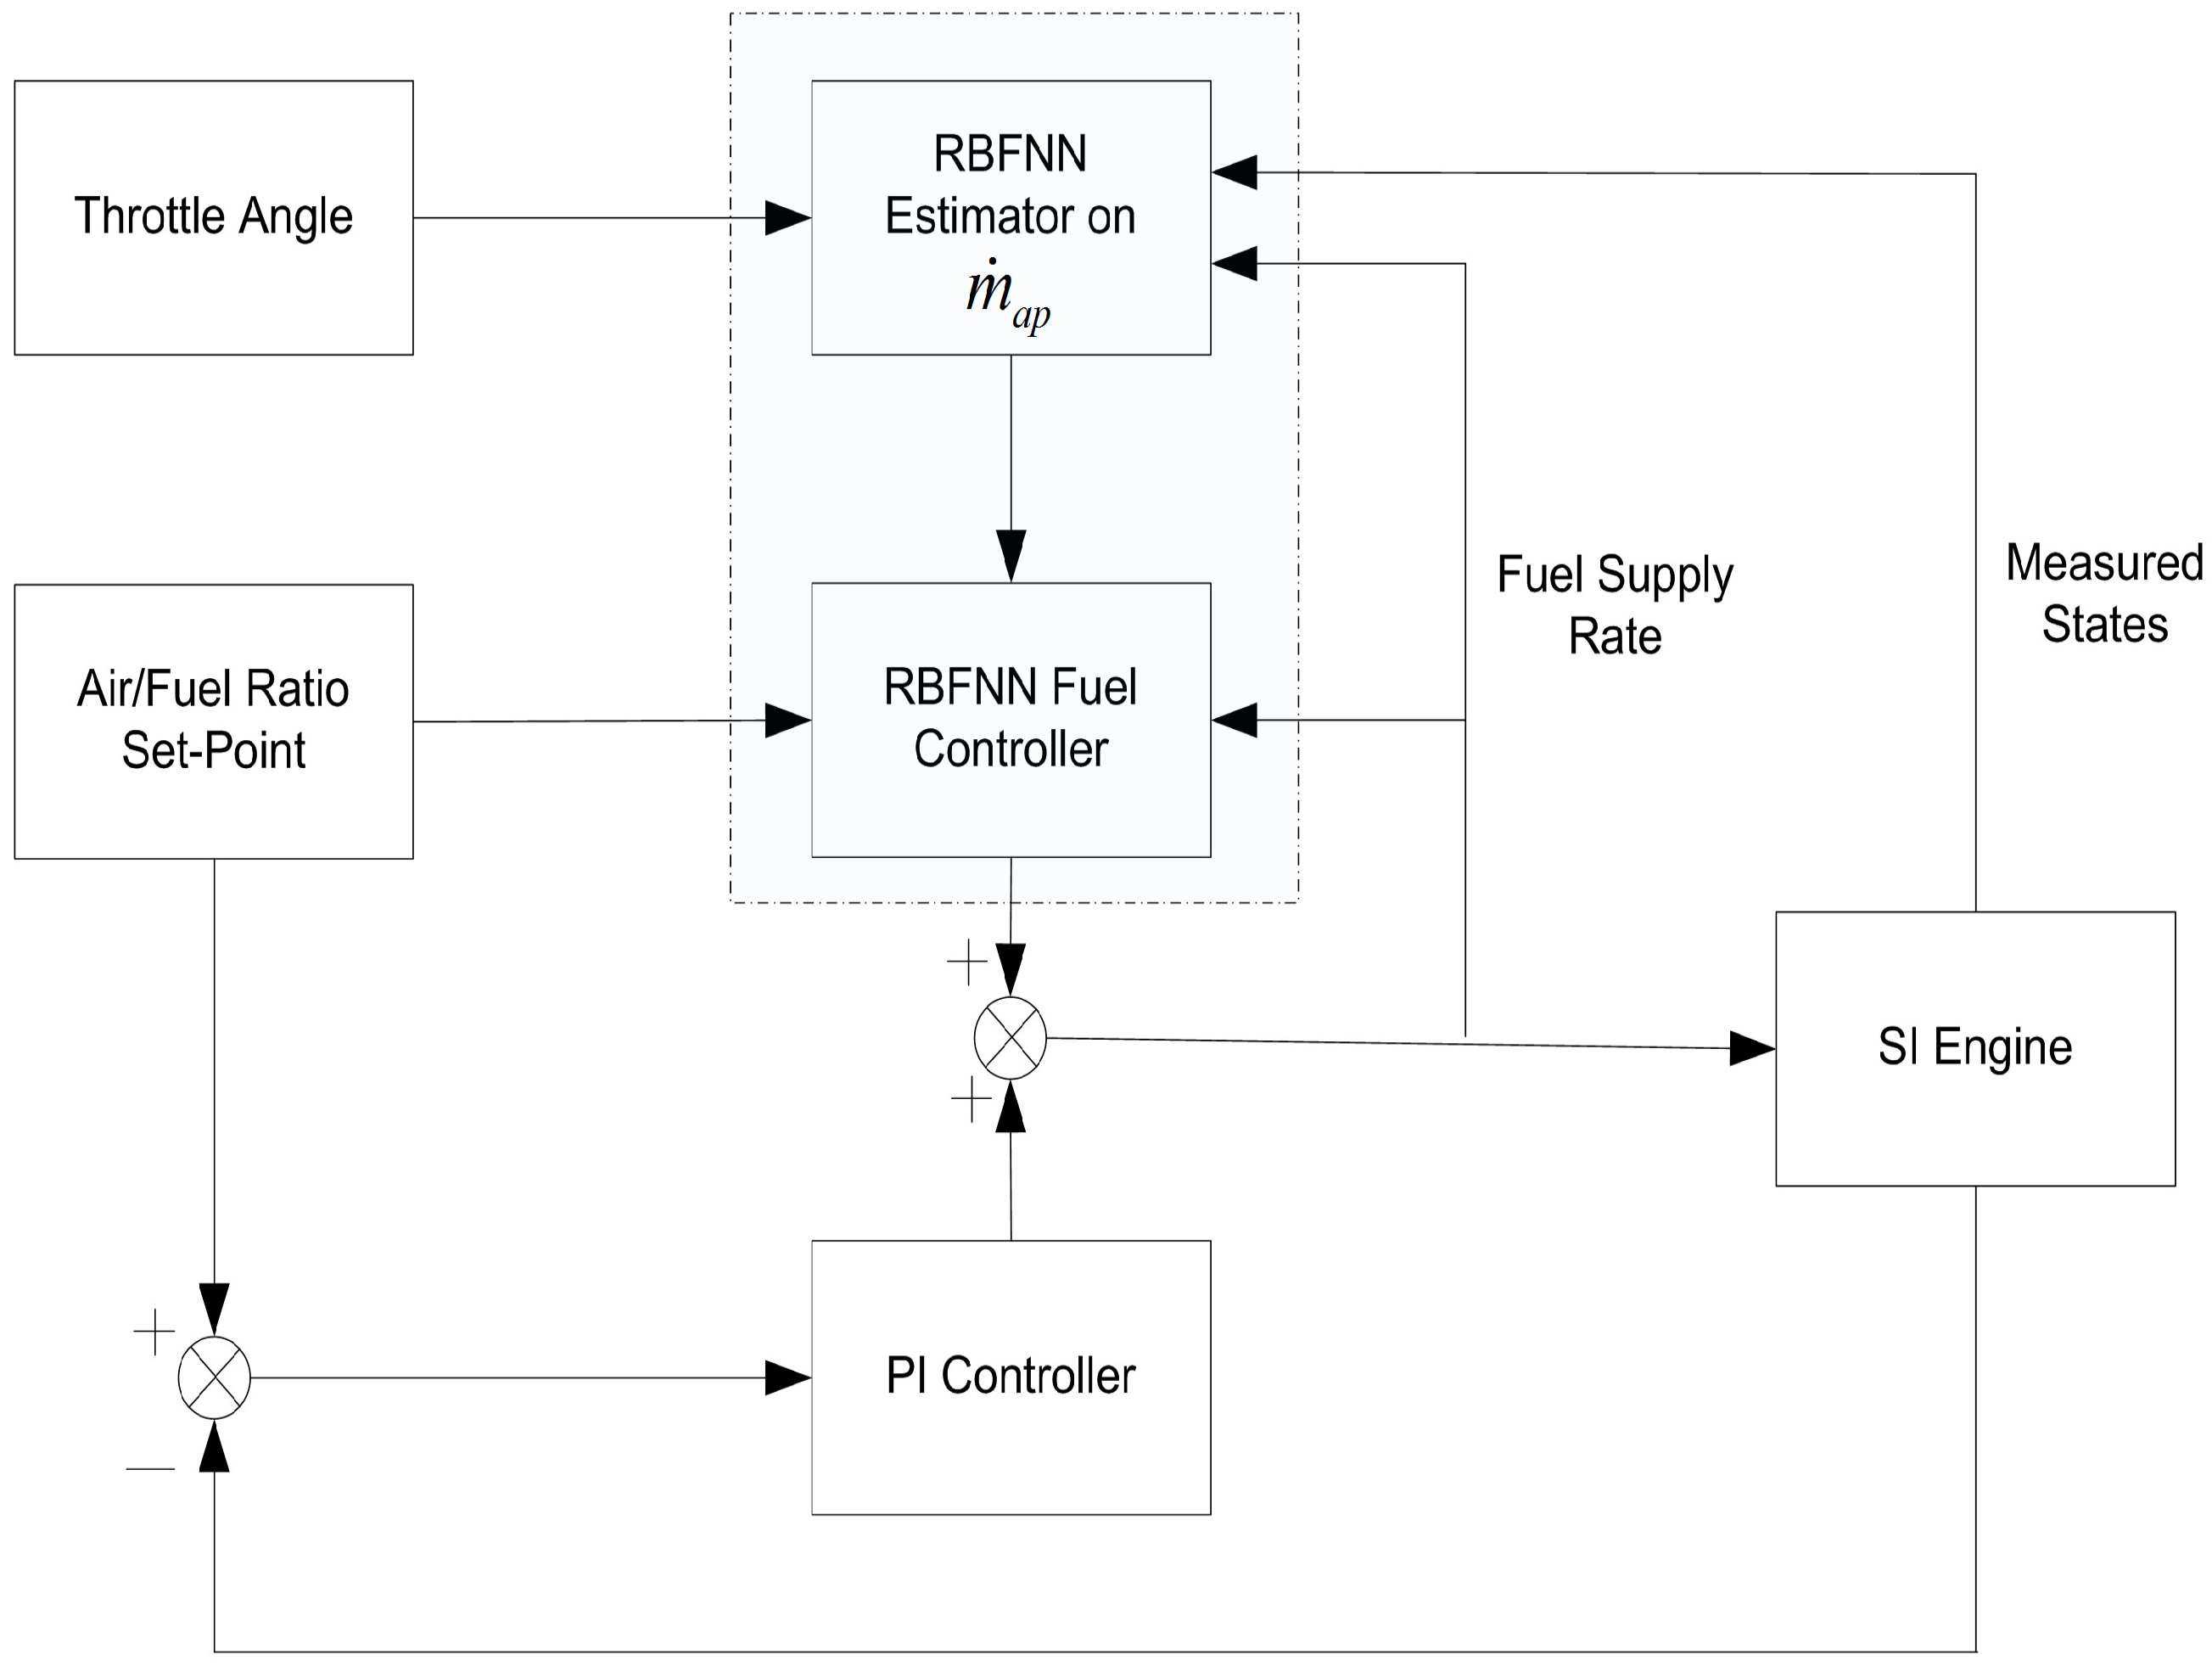 Energies Free Full Text A Soft Sensor Based Fault Tolerant Si Engine Diagram No